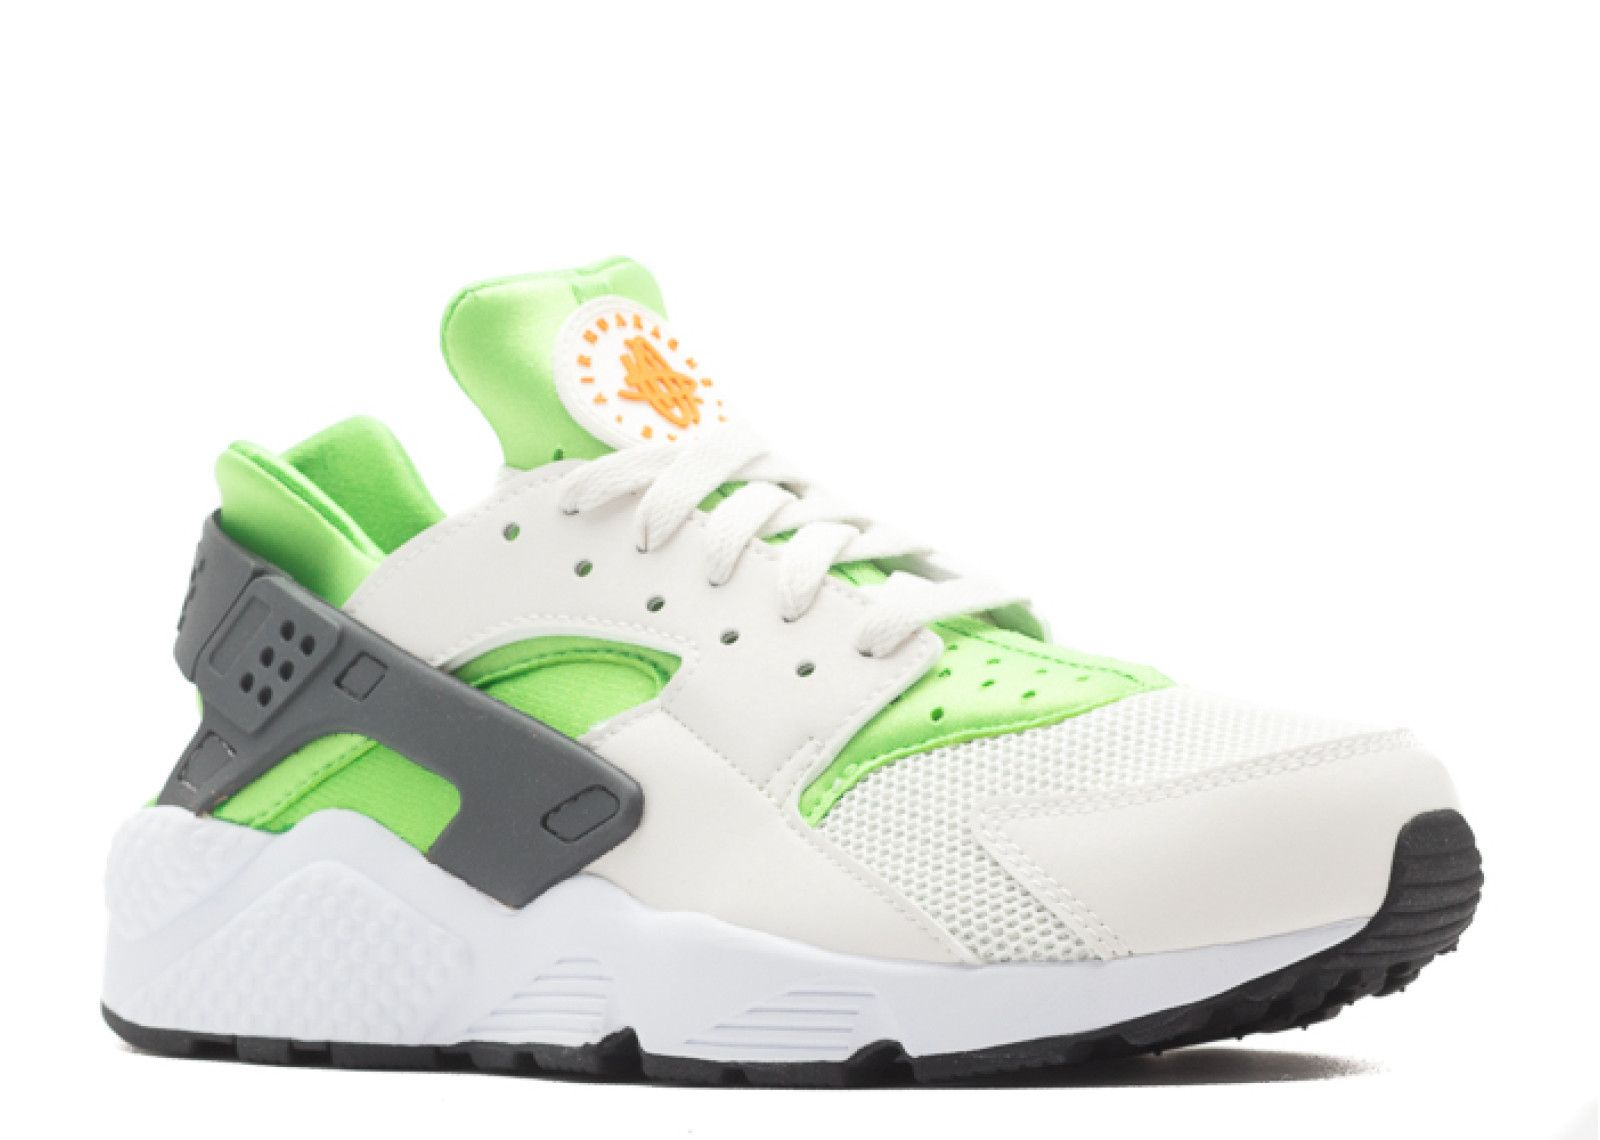 472b27fbfa59 Outlet Nike Air Huarache Actn Green Vvd Orng Phntm Wht Trainers UK Sellers